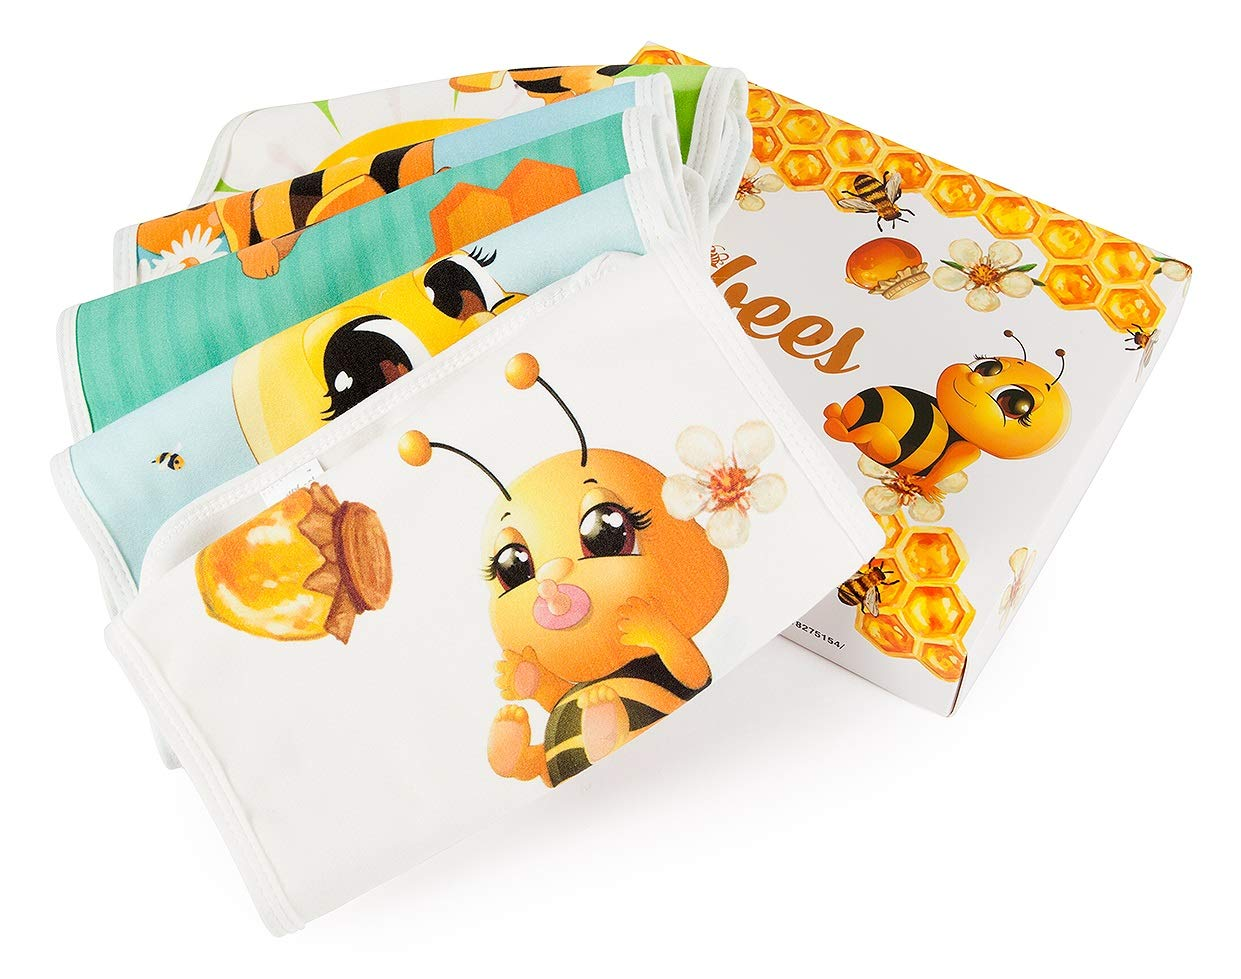 Baby Burp Cloths 5 pack. Newborn premium boxed gift registry baby shower set. Baby Bee themed for both boy and girl. Made extra large with highly absorbent, soft layers of cotton and fleece.